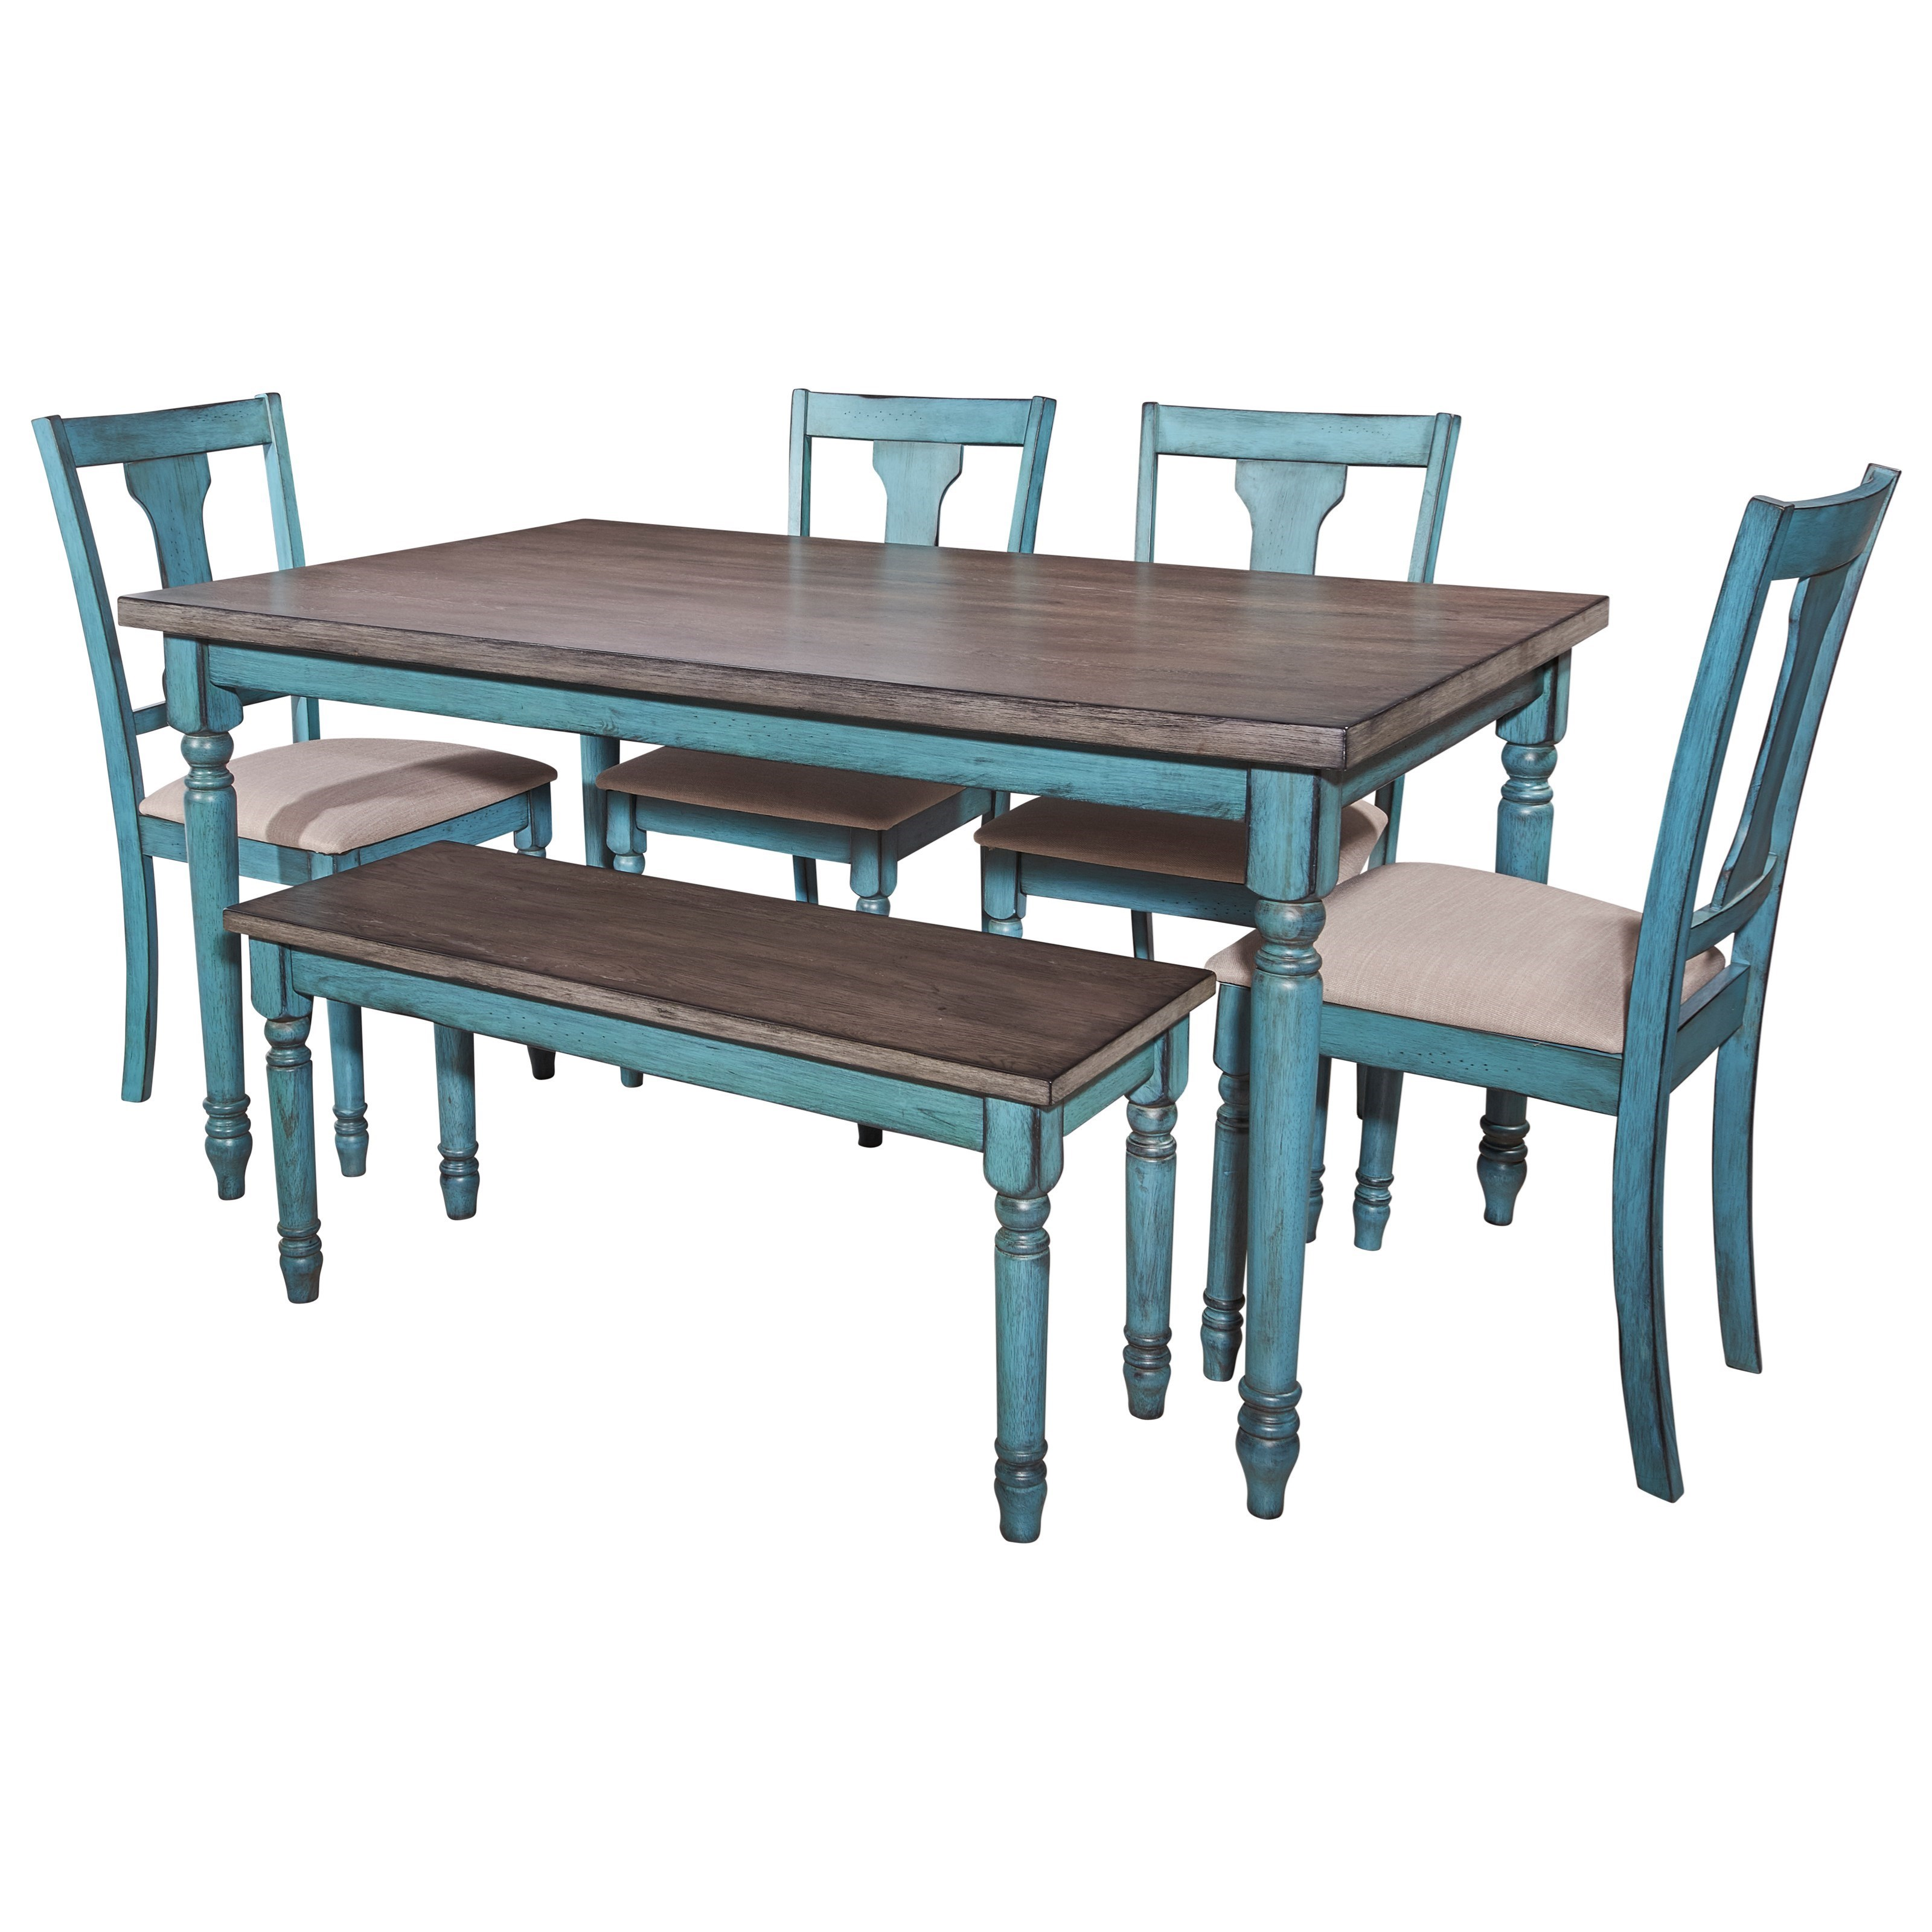 Willow Willow 6 Piece Dining Set by Powell at Bullard Furniture